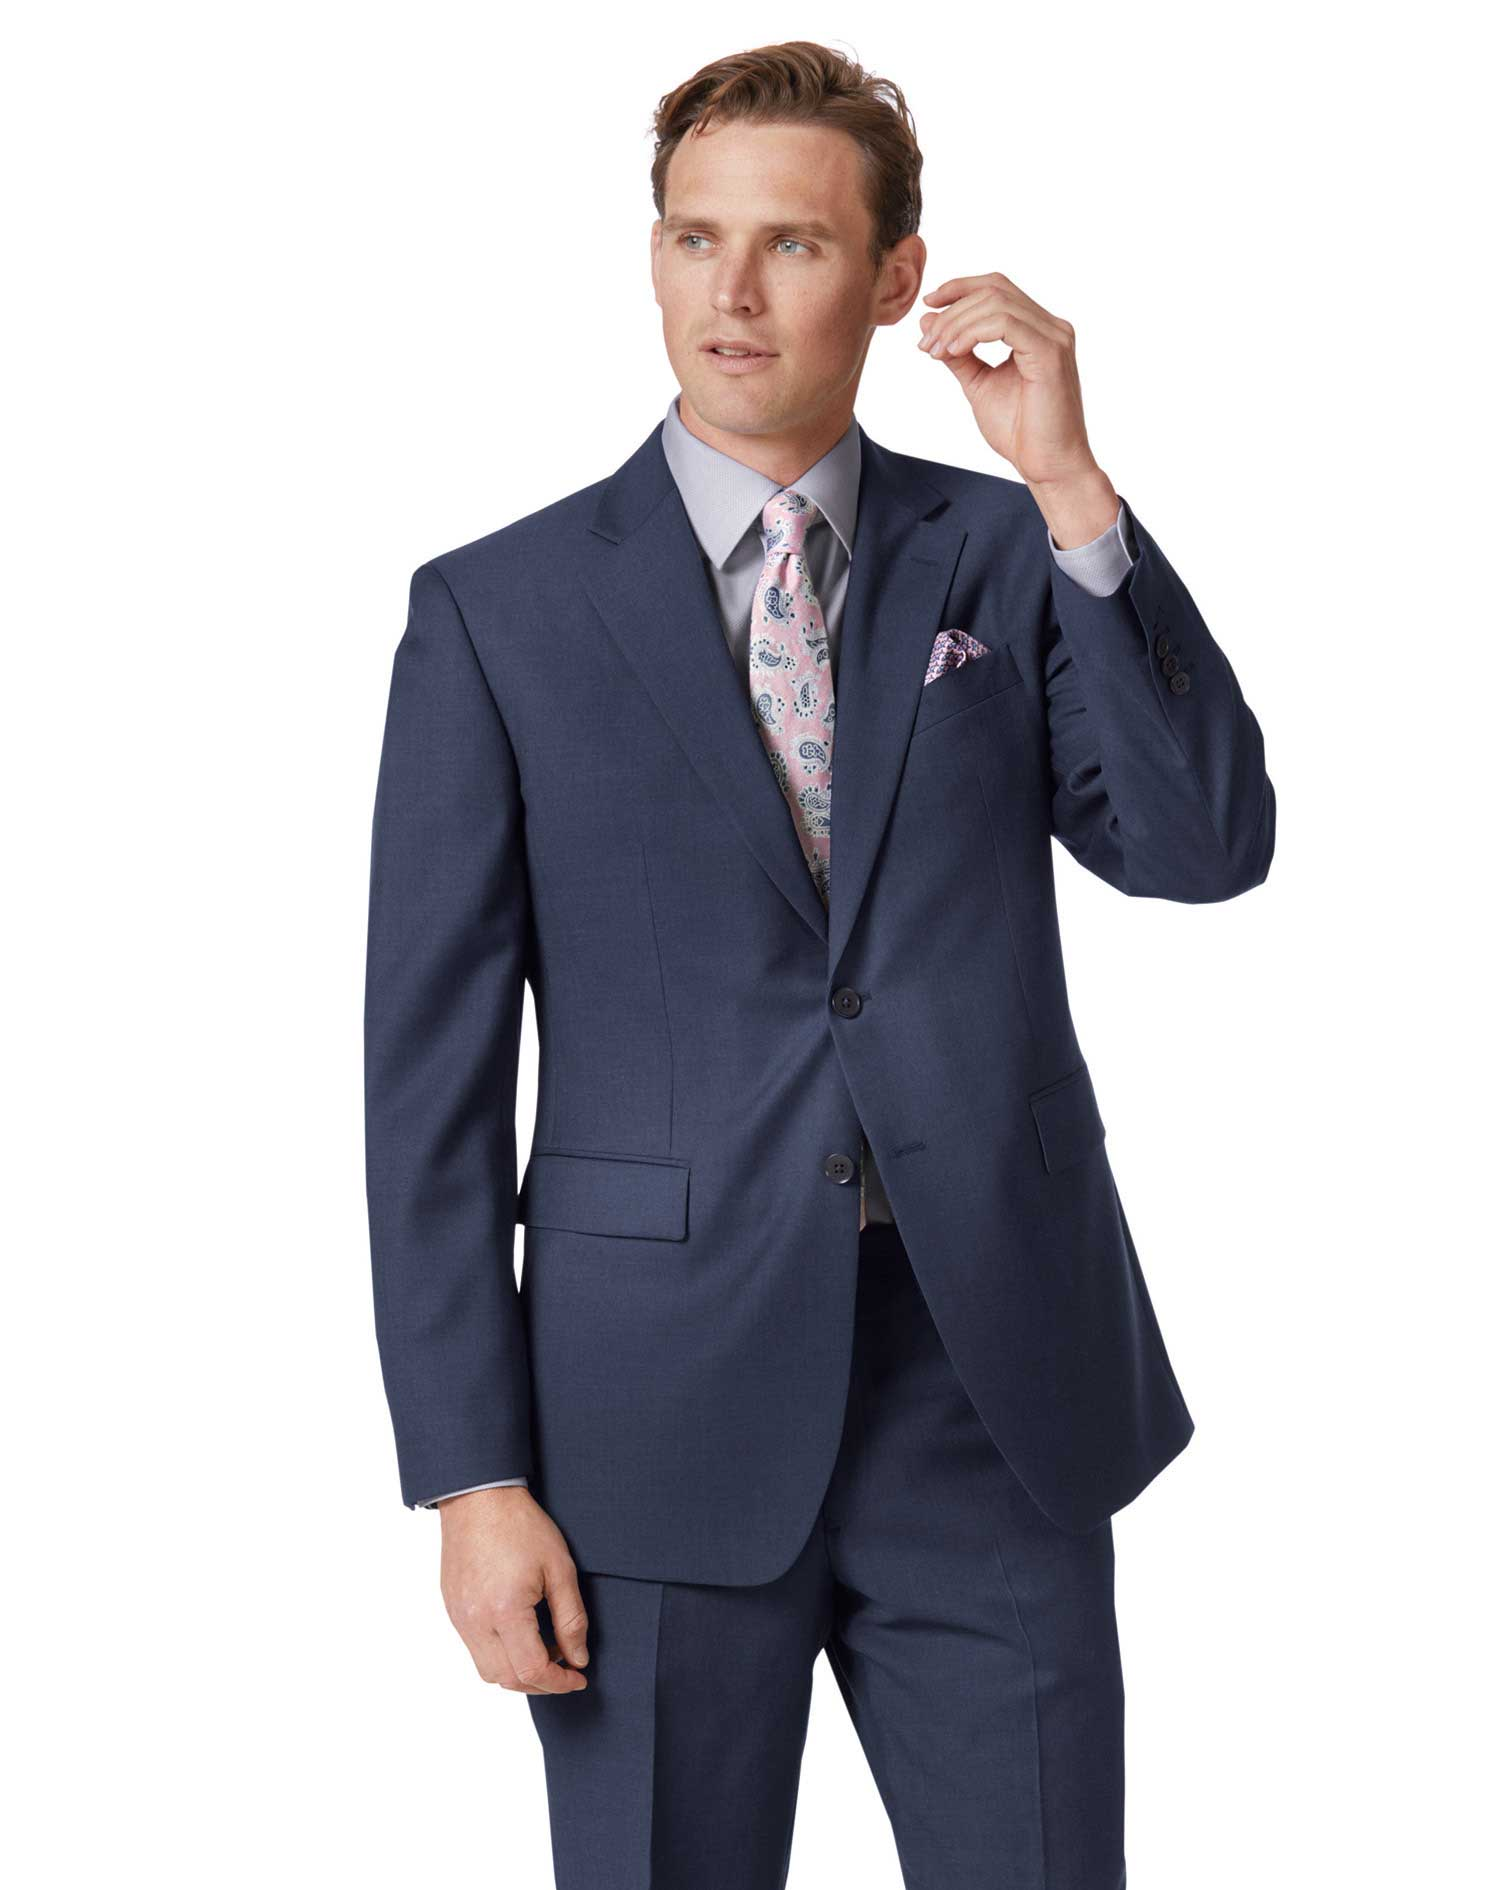 Mid Blue Classic Fit Twill Business Suit Wool Jacket Size 38 Short by Charles Tyrwhitt